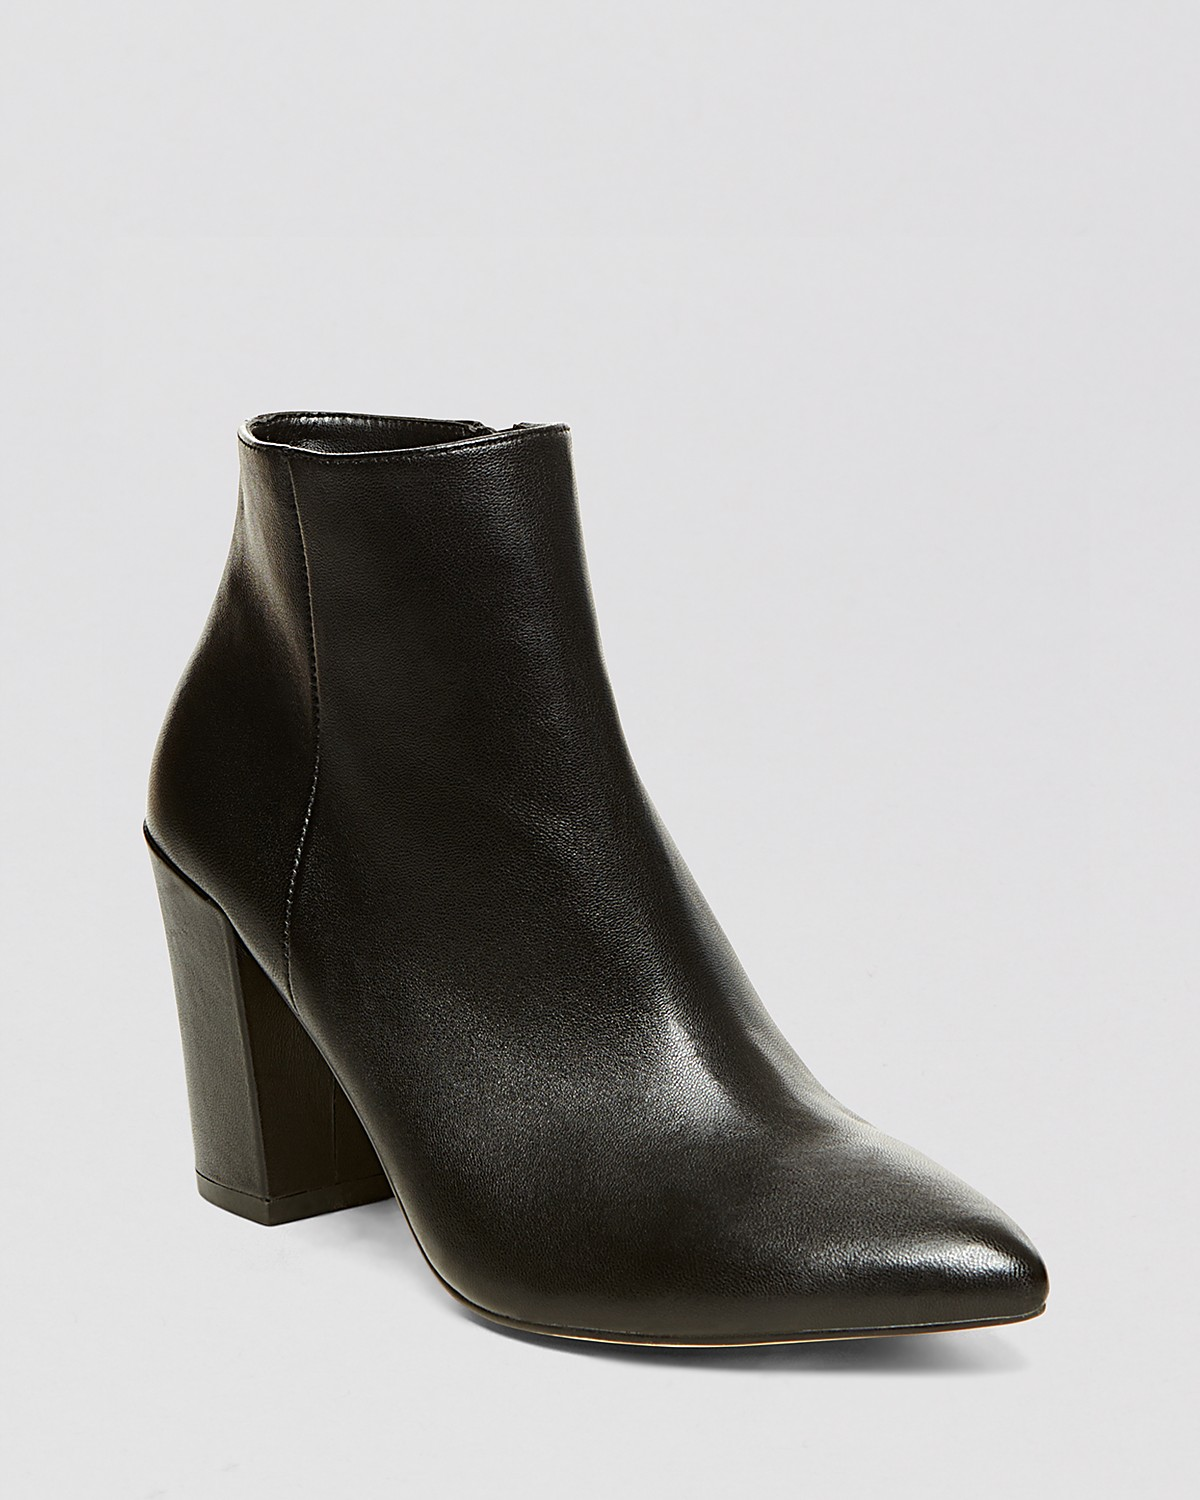 Steven by steve madden pointed toe booties